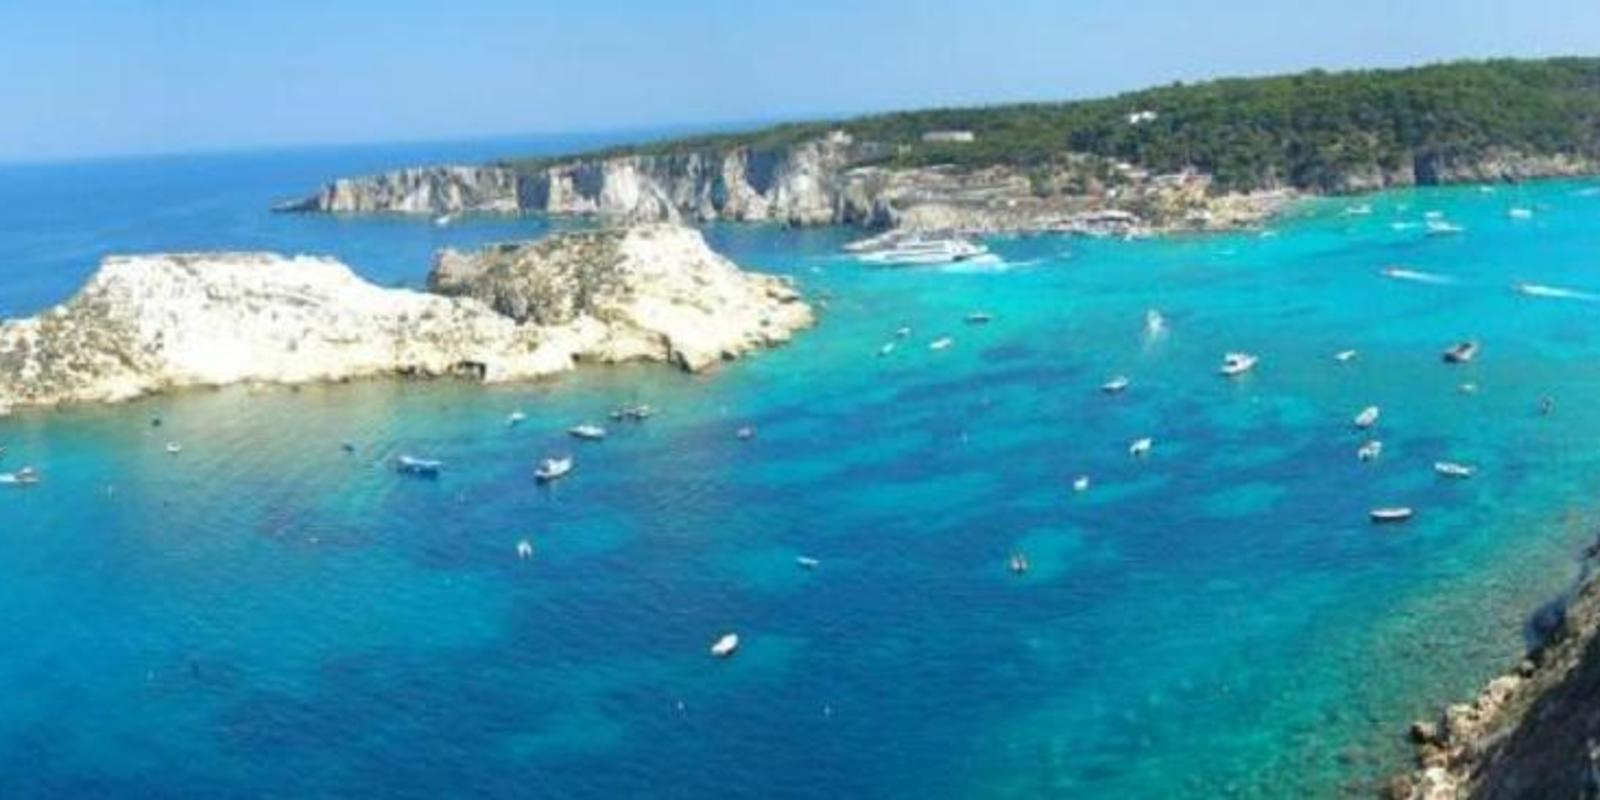 Week end to the Tremiti Islands Marine Area